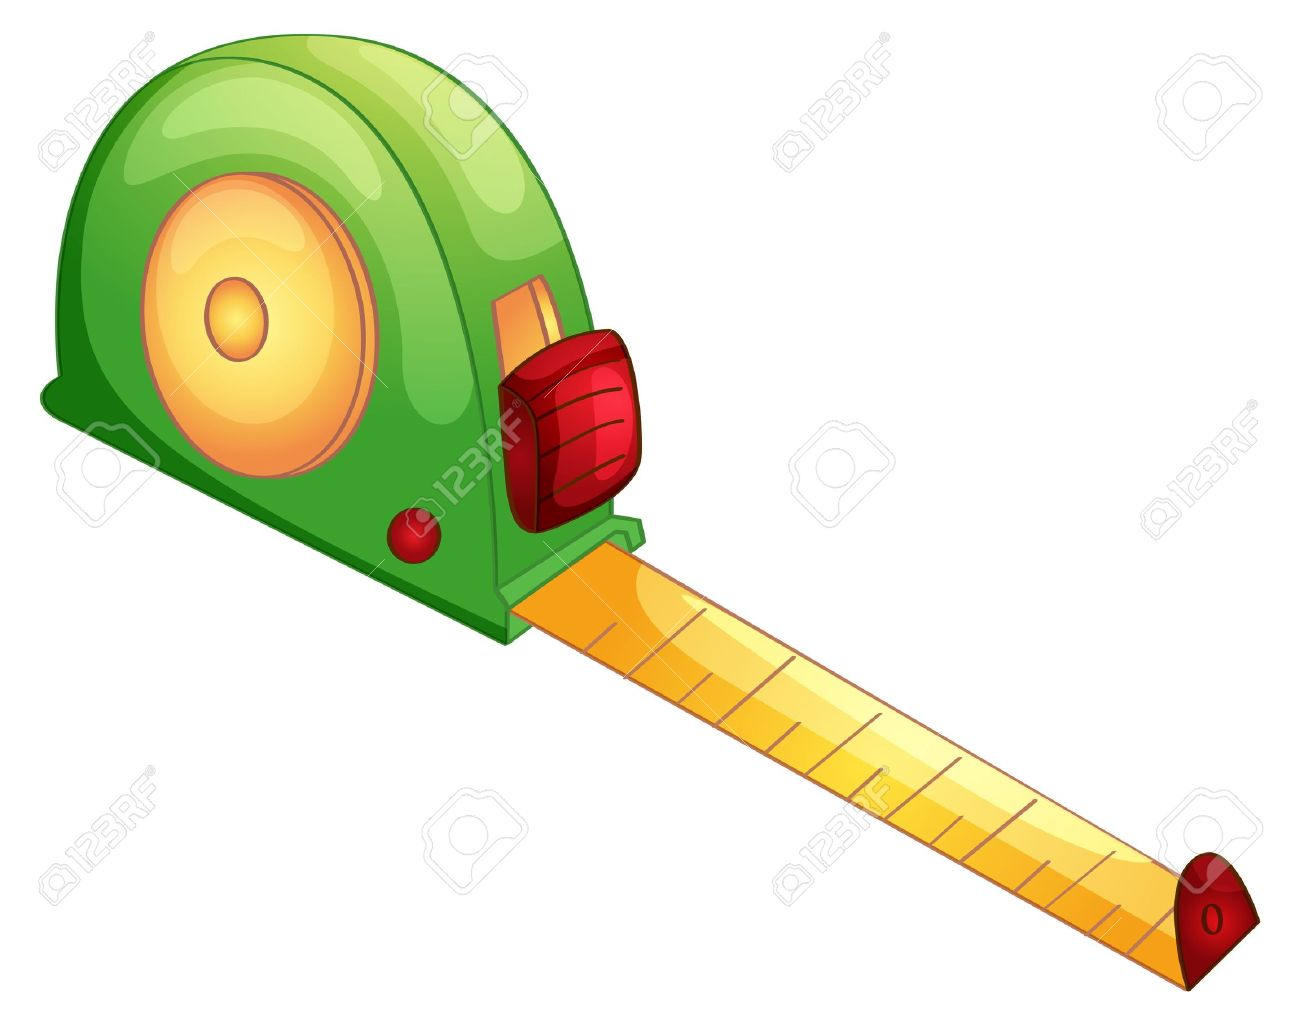 Illustration of a tape measure Stock Vector - 13988516